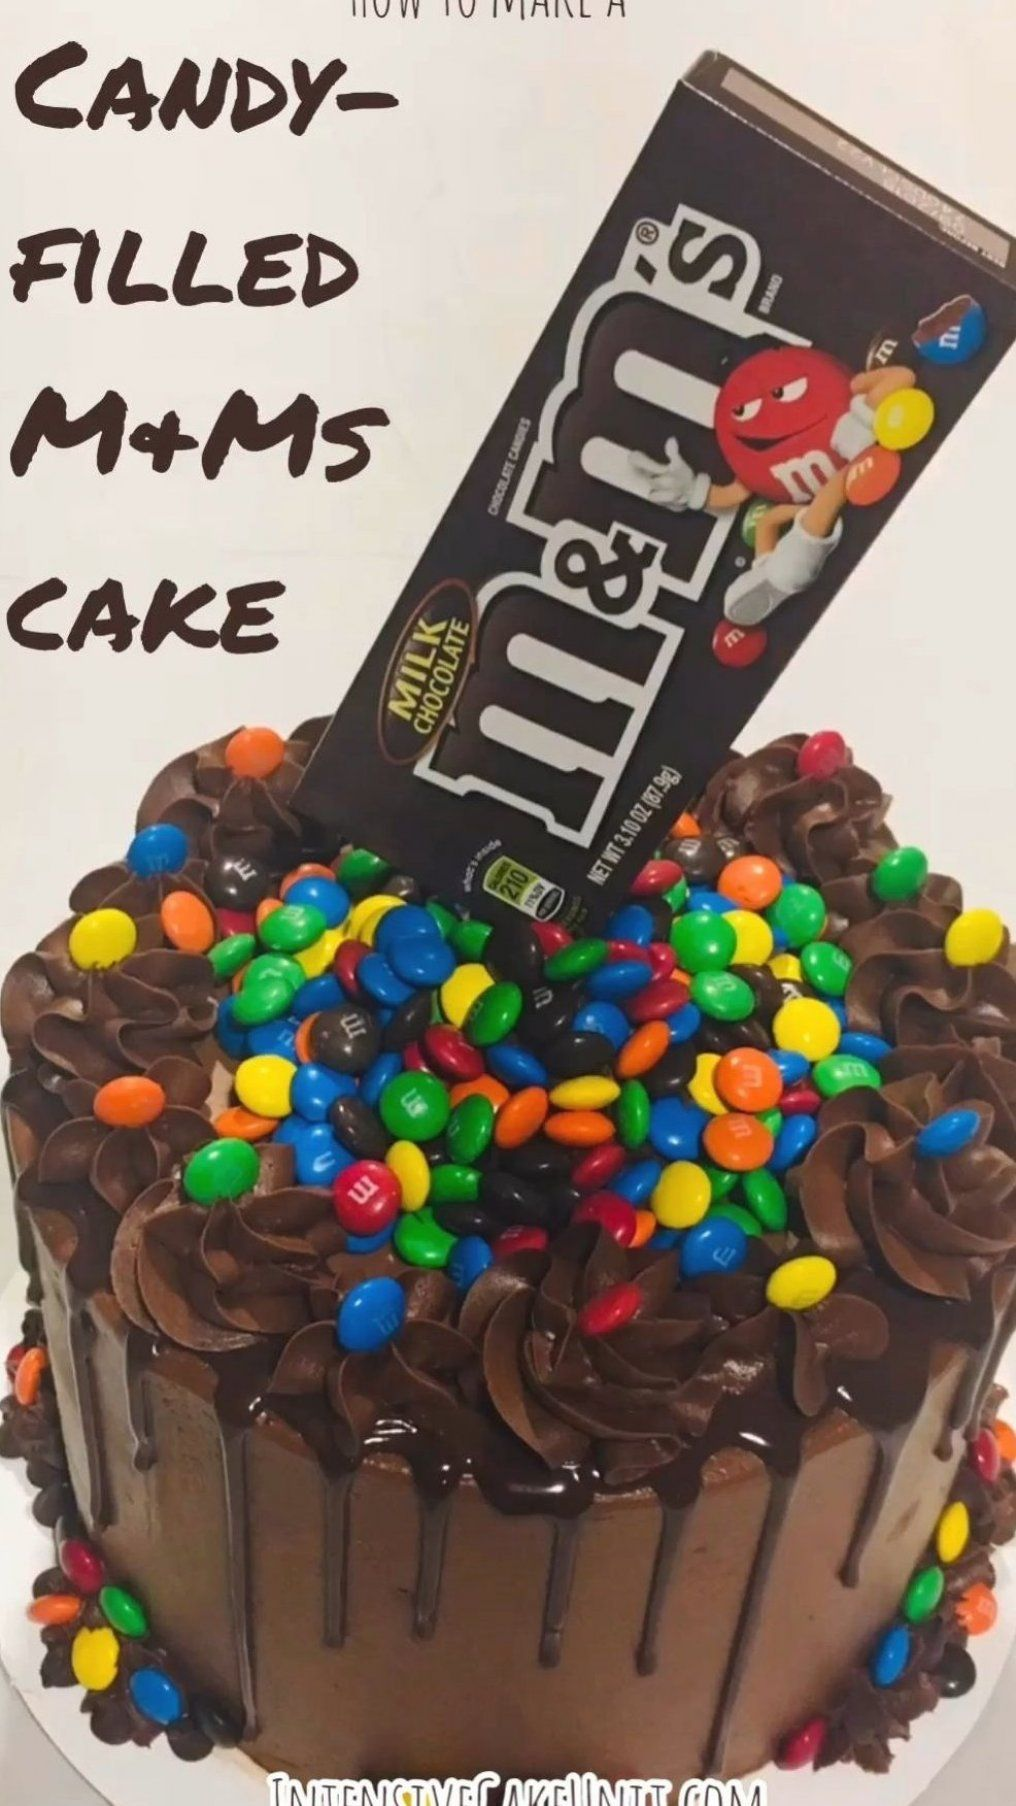 Easy M Ms Cake Chocolate Cake Filled With M Ms Candy And Topped With A M Ms Box For A Cool Anti Gravi Chocolate Cake Decoration Candy Cakes Yummy Food Dessert